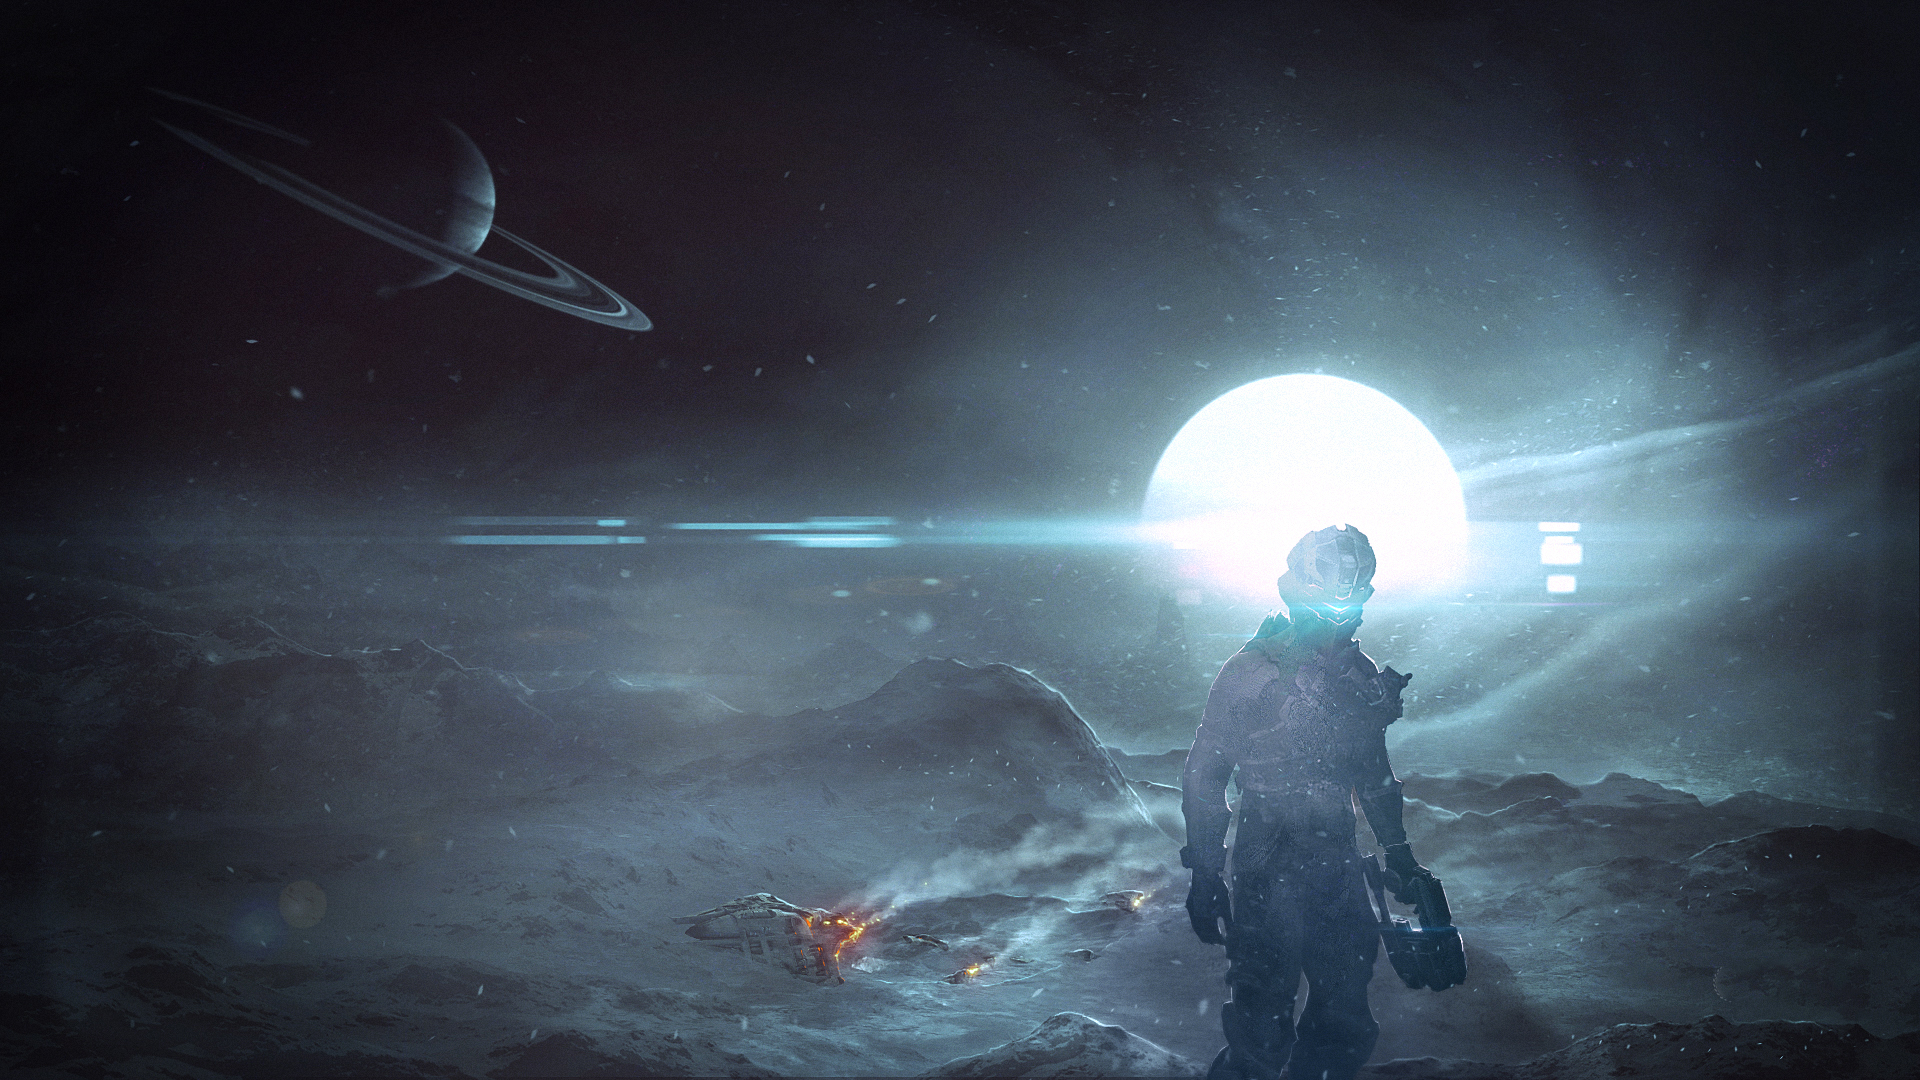 dead-space-shine-satellite-surface-isaac-clarke-1920%C3%971080-wallpaper-wp3404504